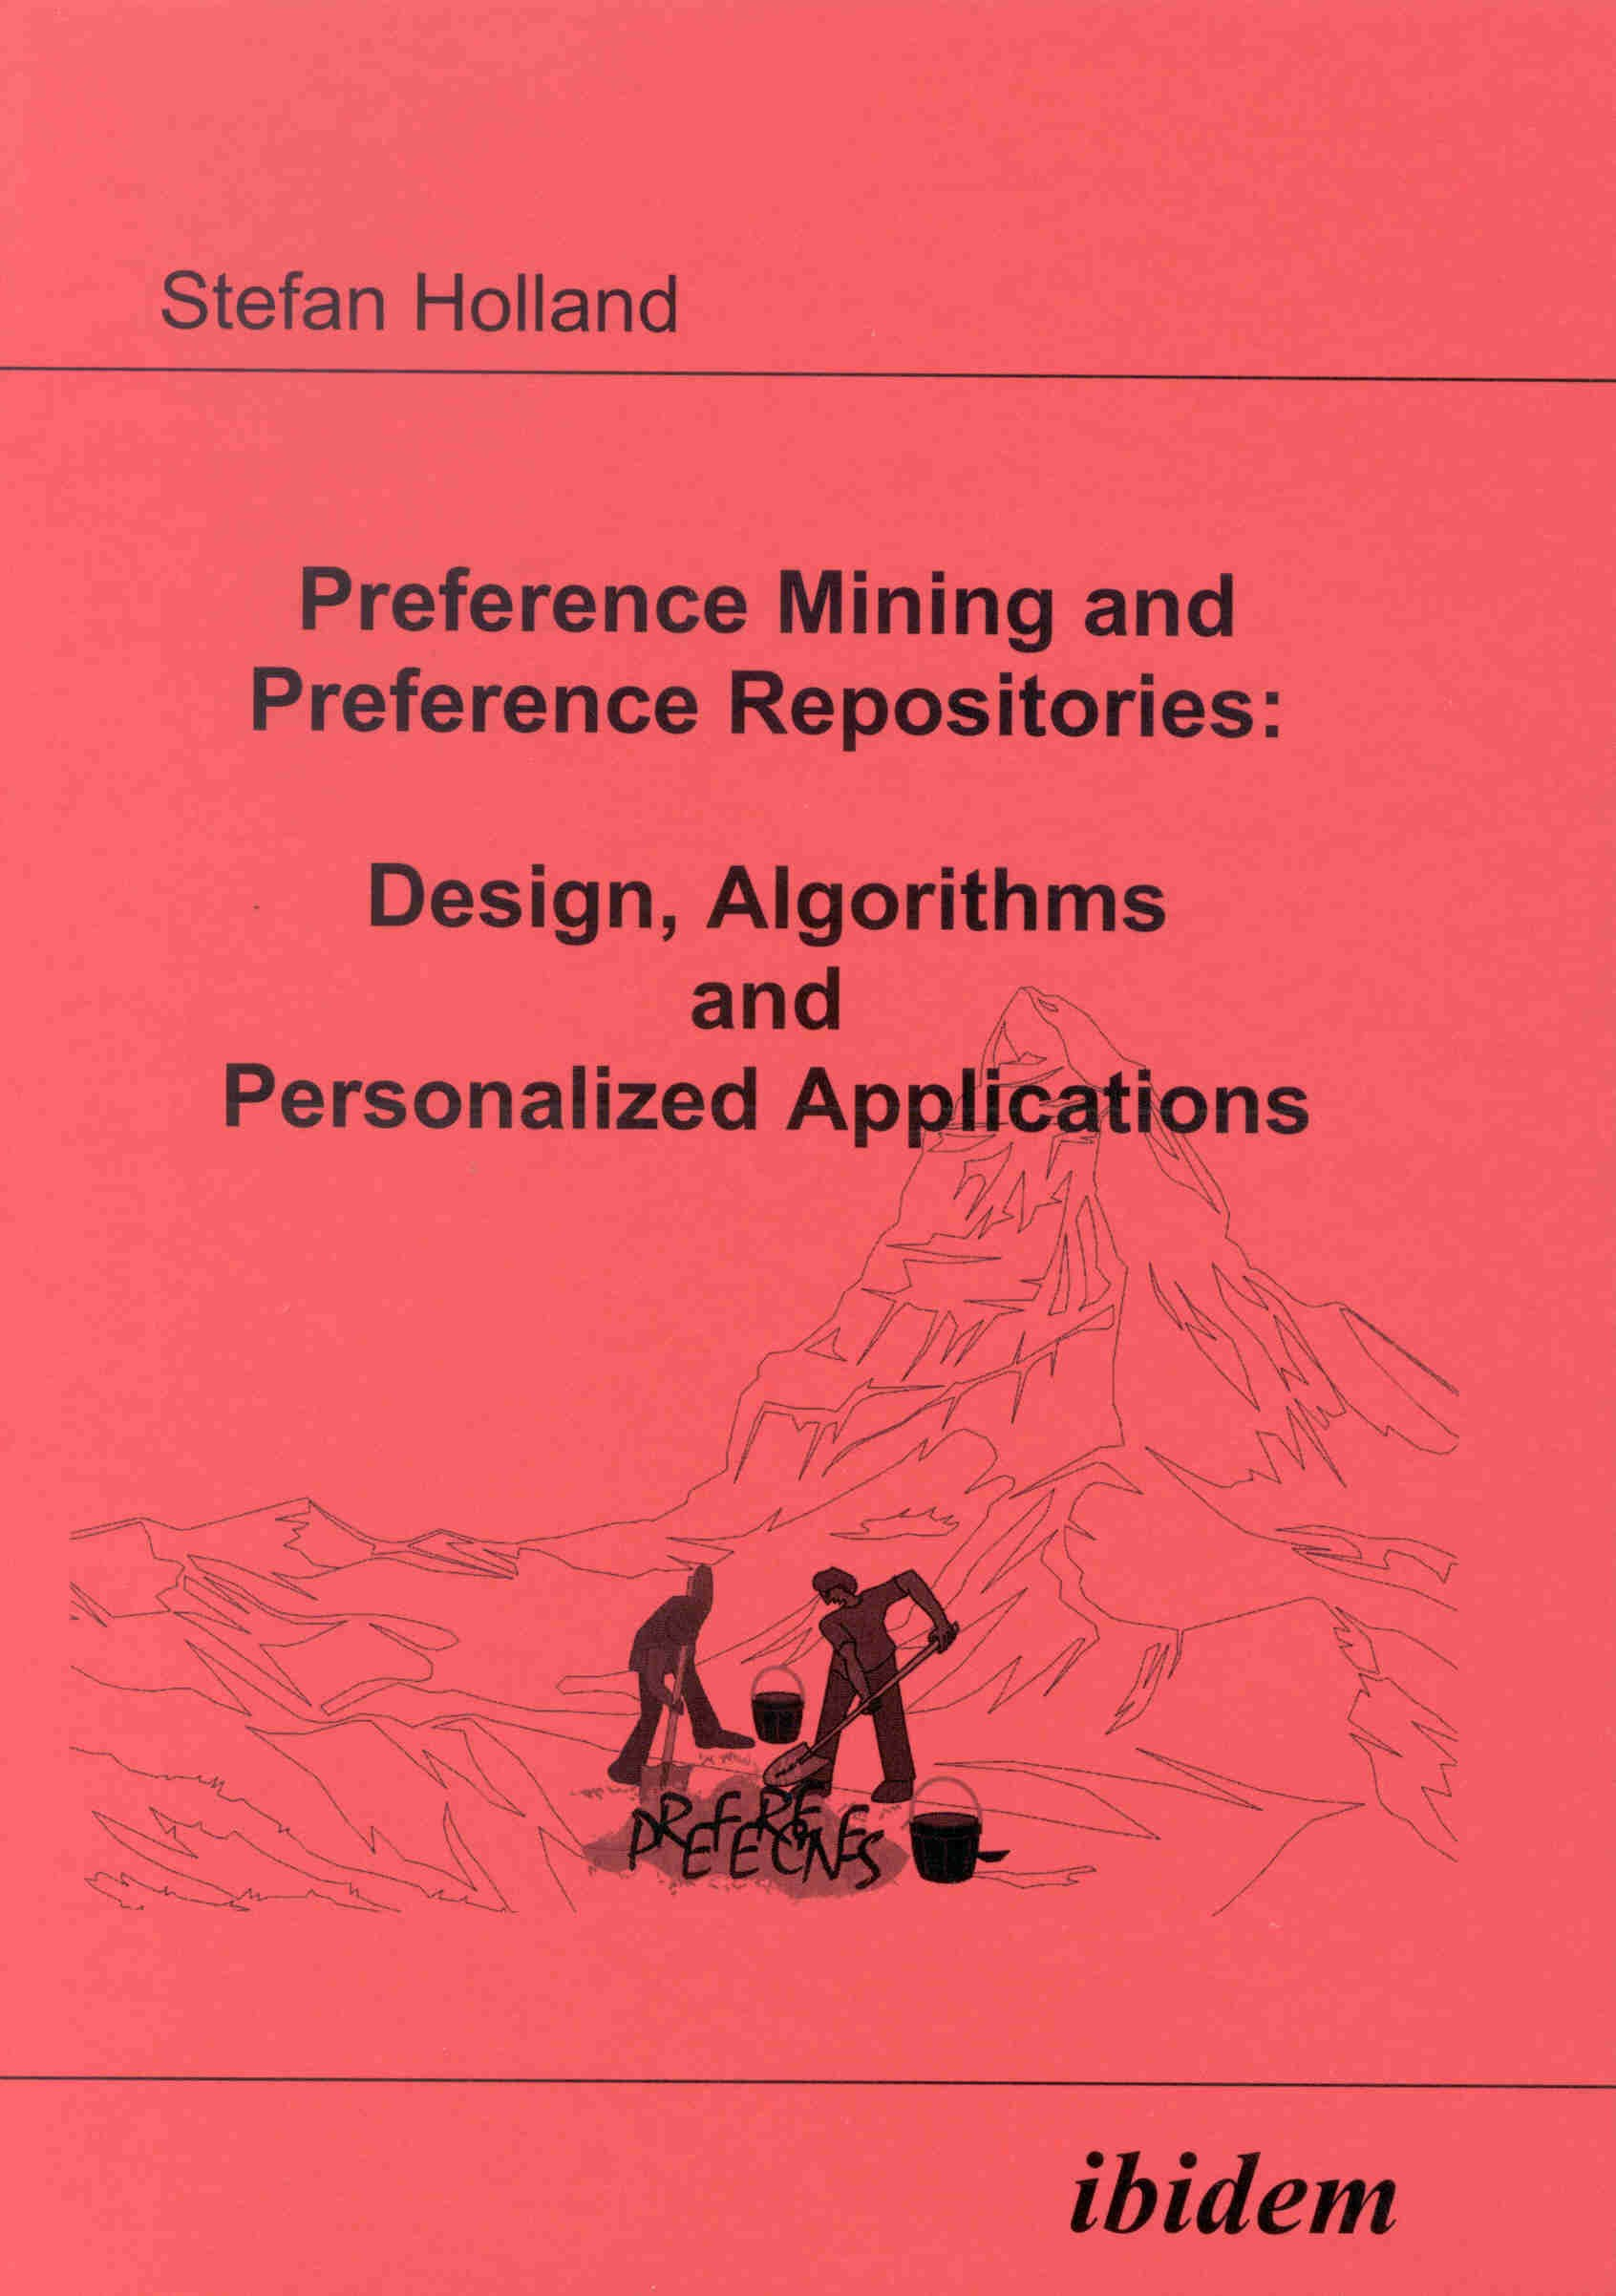 Preference Mining and Preference Repositories: Design, Algorithms and Personalized Applications